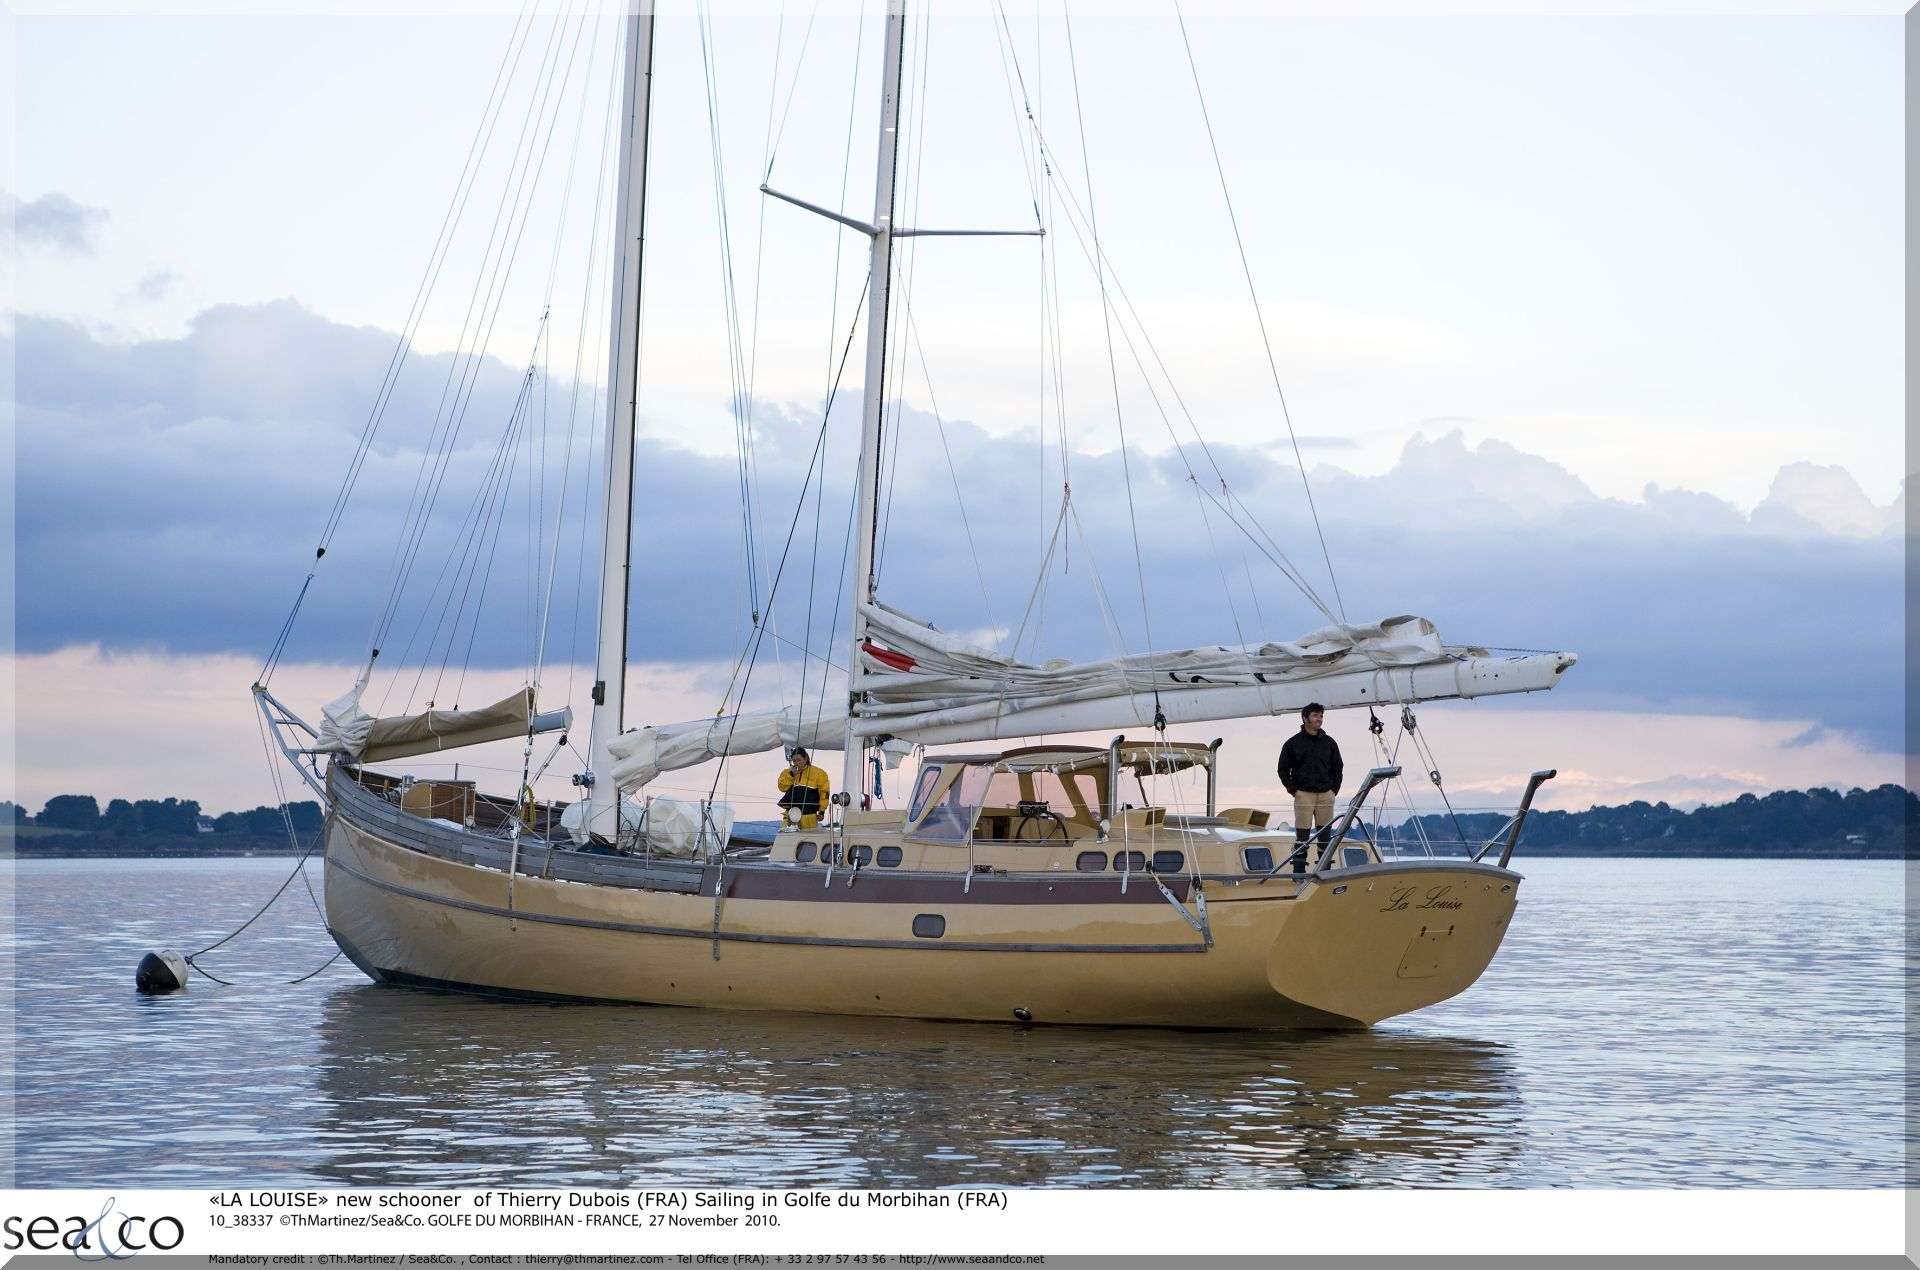 """LA LOUISE"" new schooner of Thierry Dubois (FRA) Sailing in Golfe du Morbihan (FRA)"